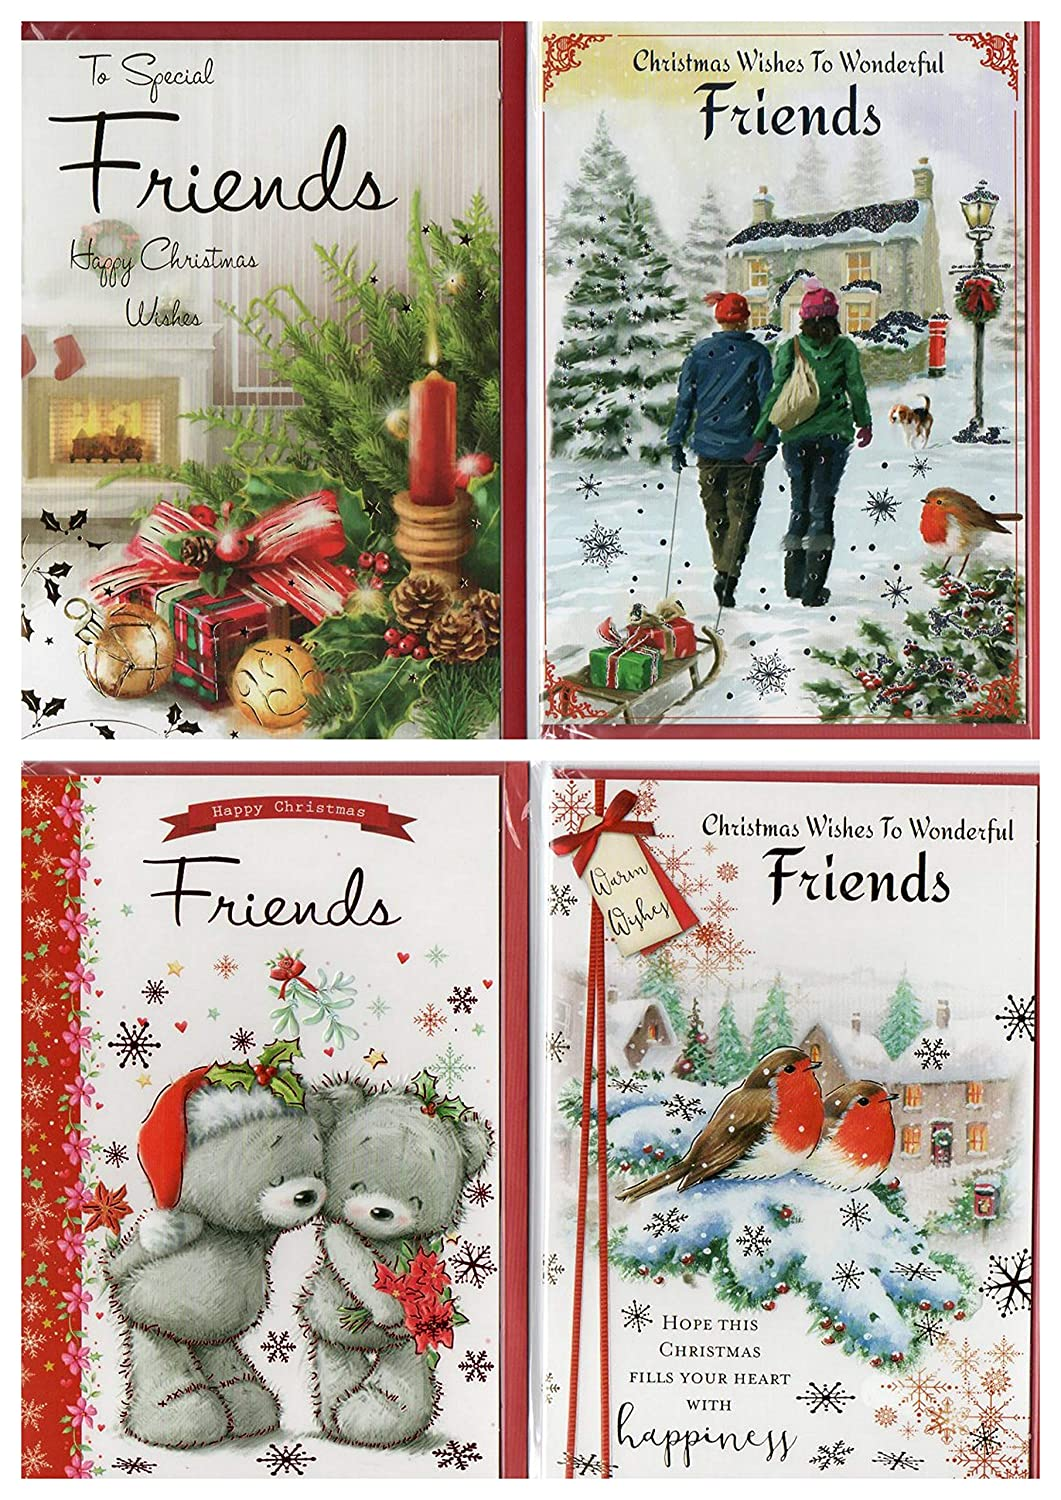 8 Assorted to Friends at Christmas Cards and Envelopes. Embossed Cards with Envelopes